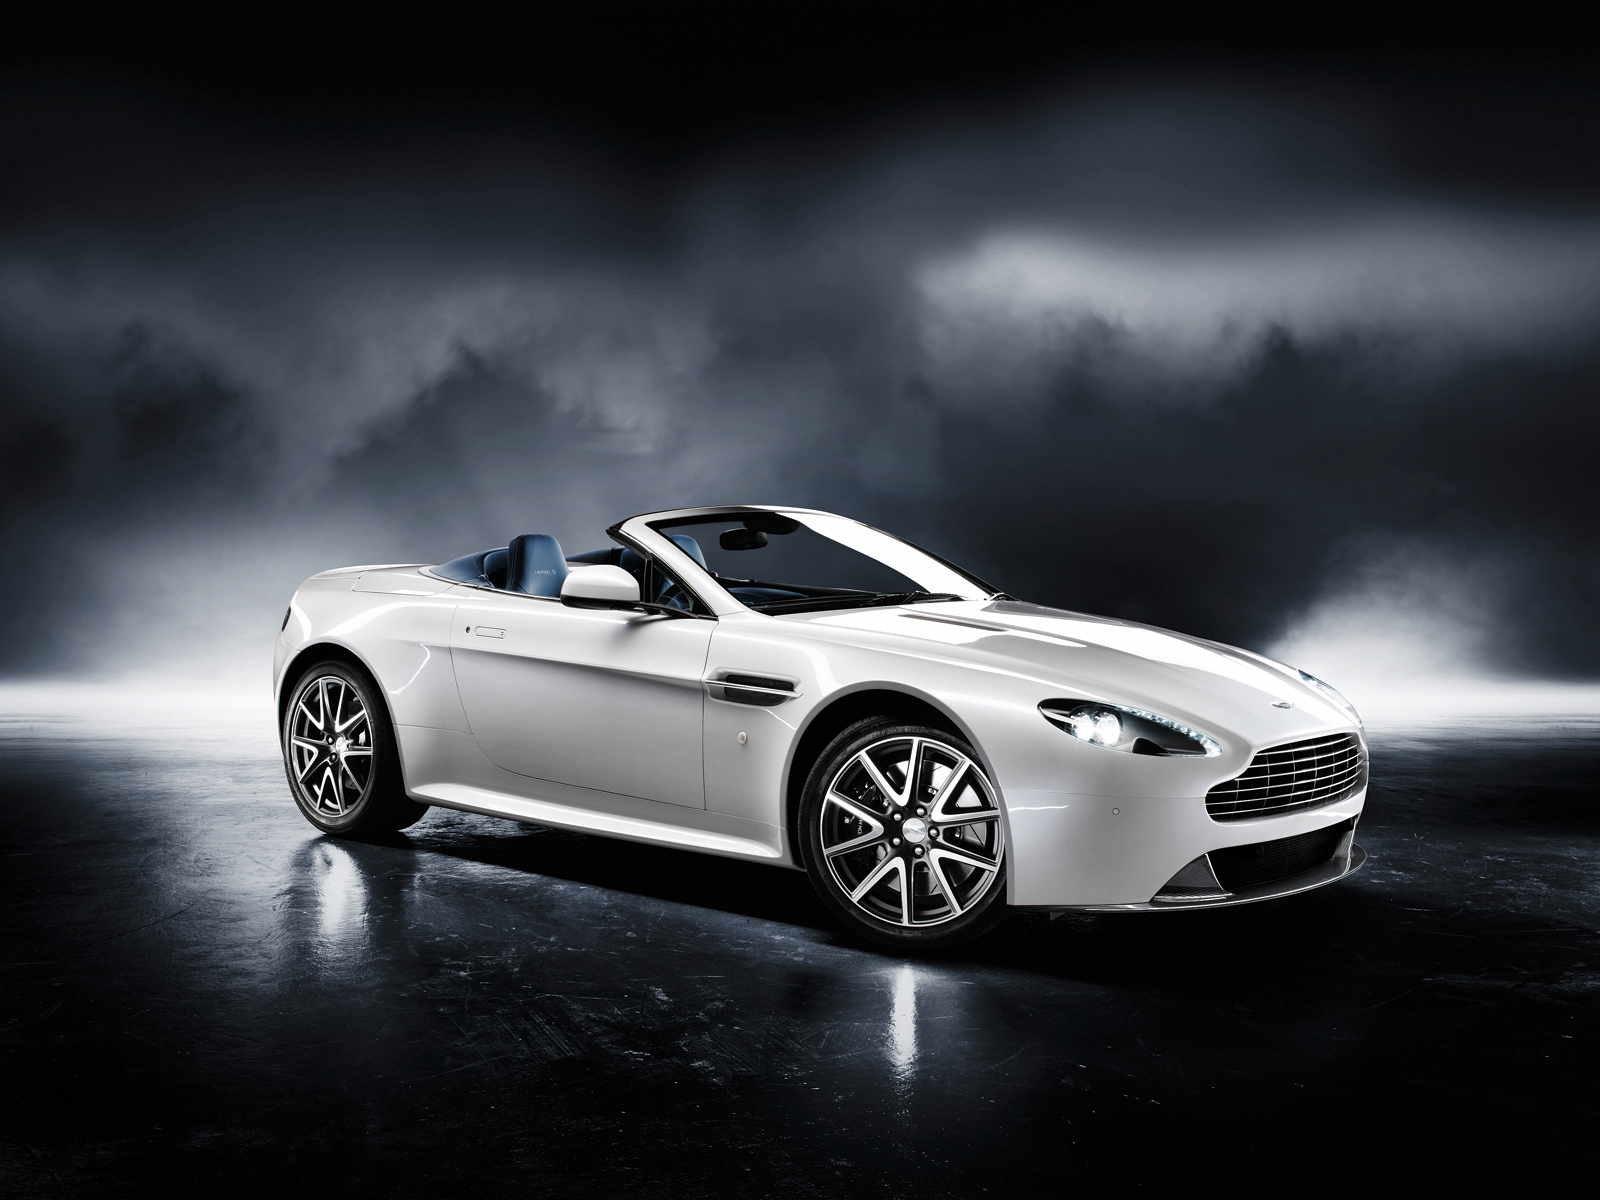 aston martin sports car 2011 the car club. Black Bedroom Furniture Sets. Home Design Ideas